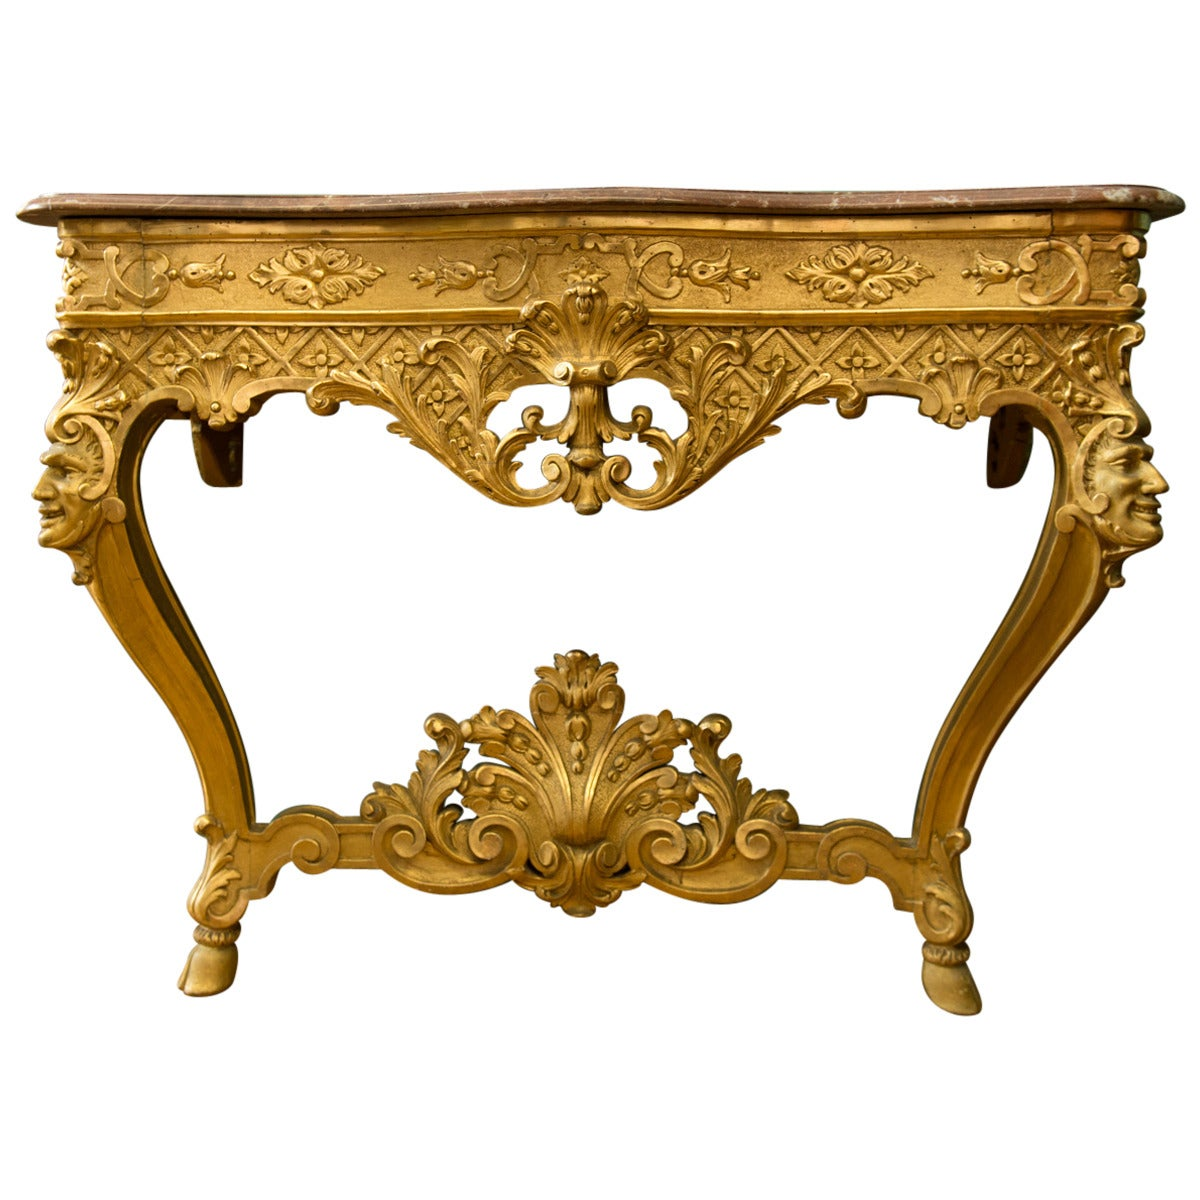 Italian Antique Carved Giltwood Louis XV Style Console Table 1 - Italian Antique Carved Giltwood Louis XV Style Console Table At